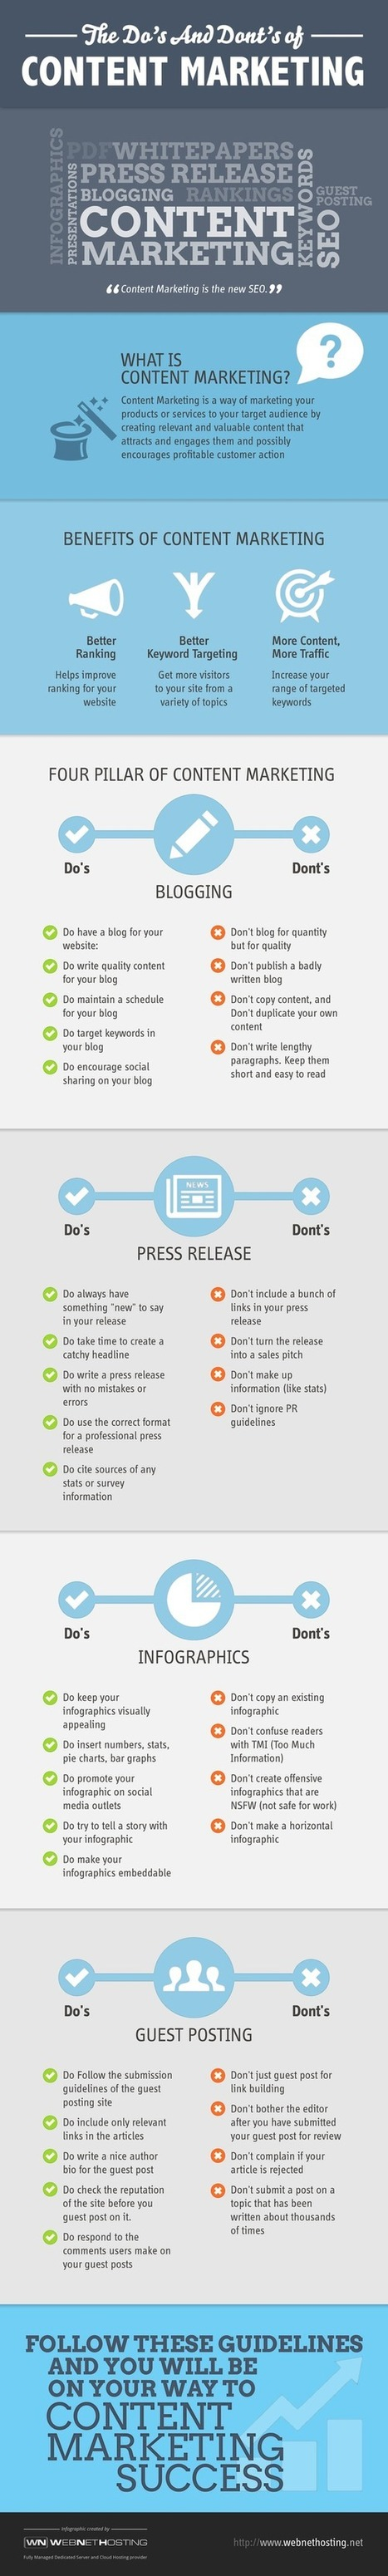 The Do's and Dont's of Content Marketing - Infographic | Social Media Specialist JLS | Scoop.it